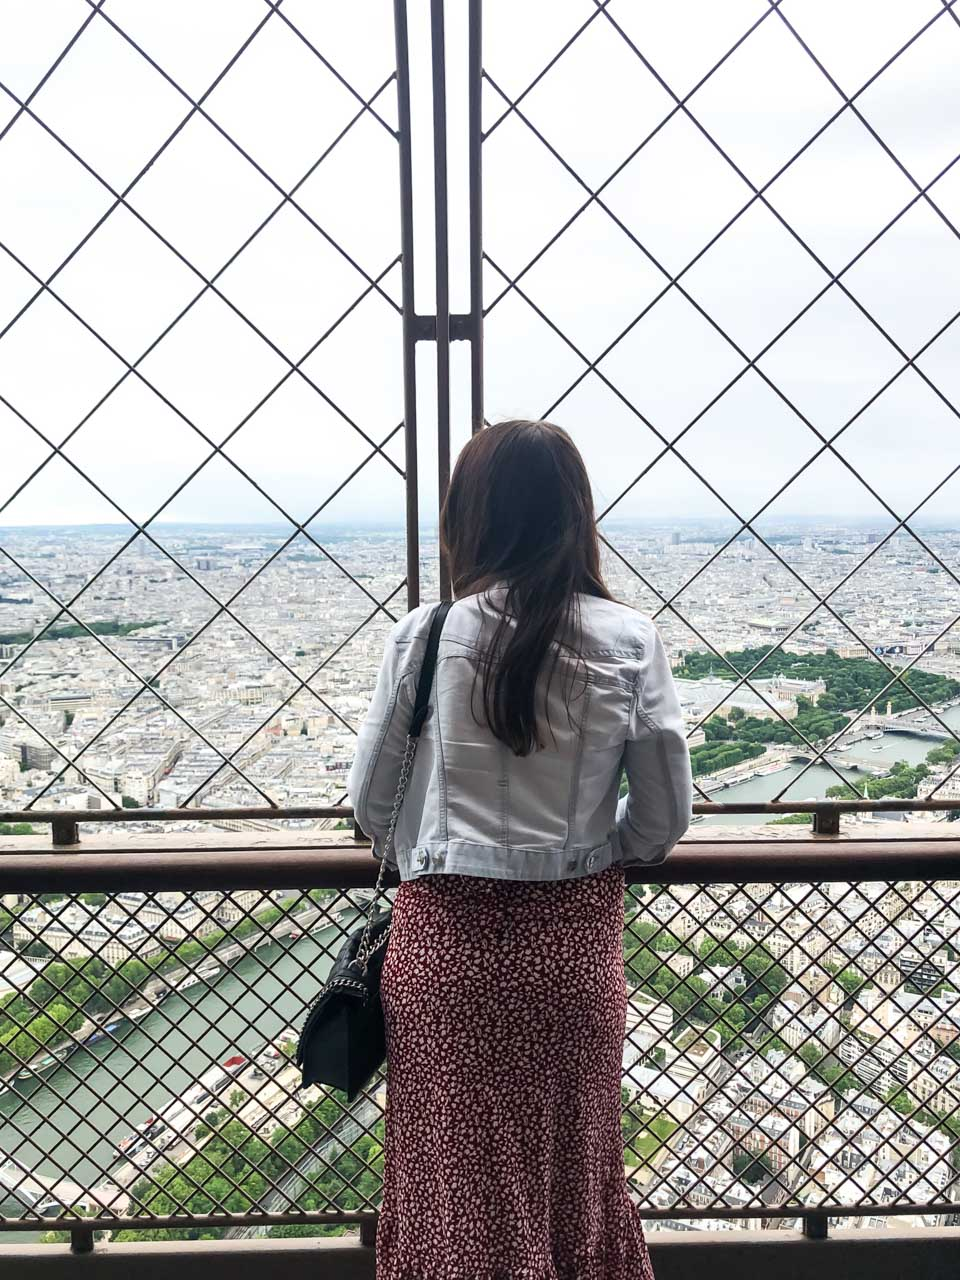 A dark-haired woman in a light denim jacket and a white and red floral dress with her back turned to the camera leaning against the ledge of the observation deck at the top of the Eiffel Tower and admiring the view